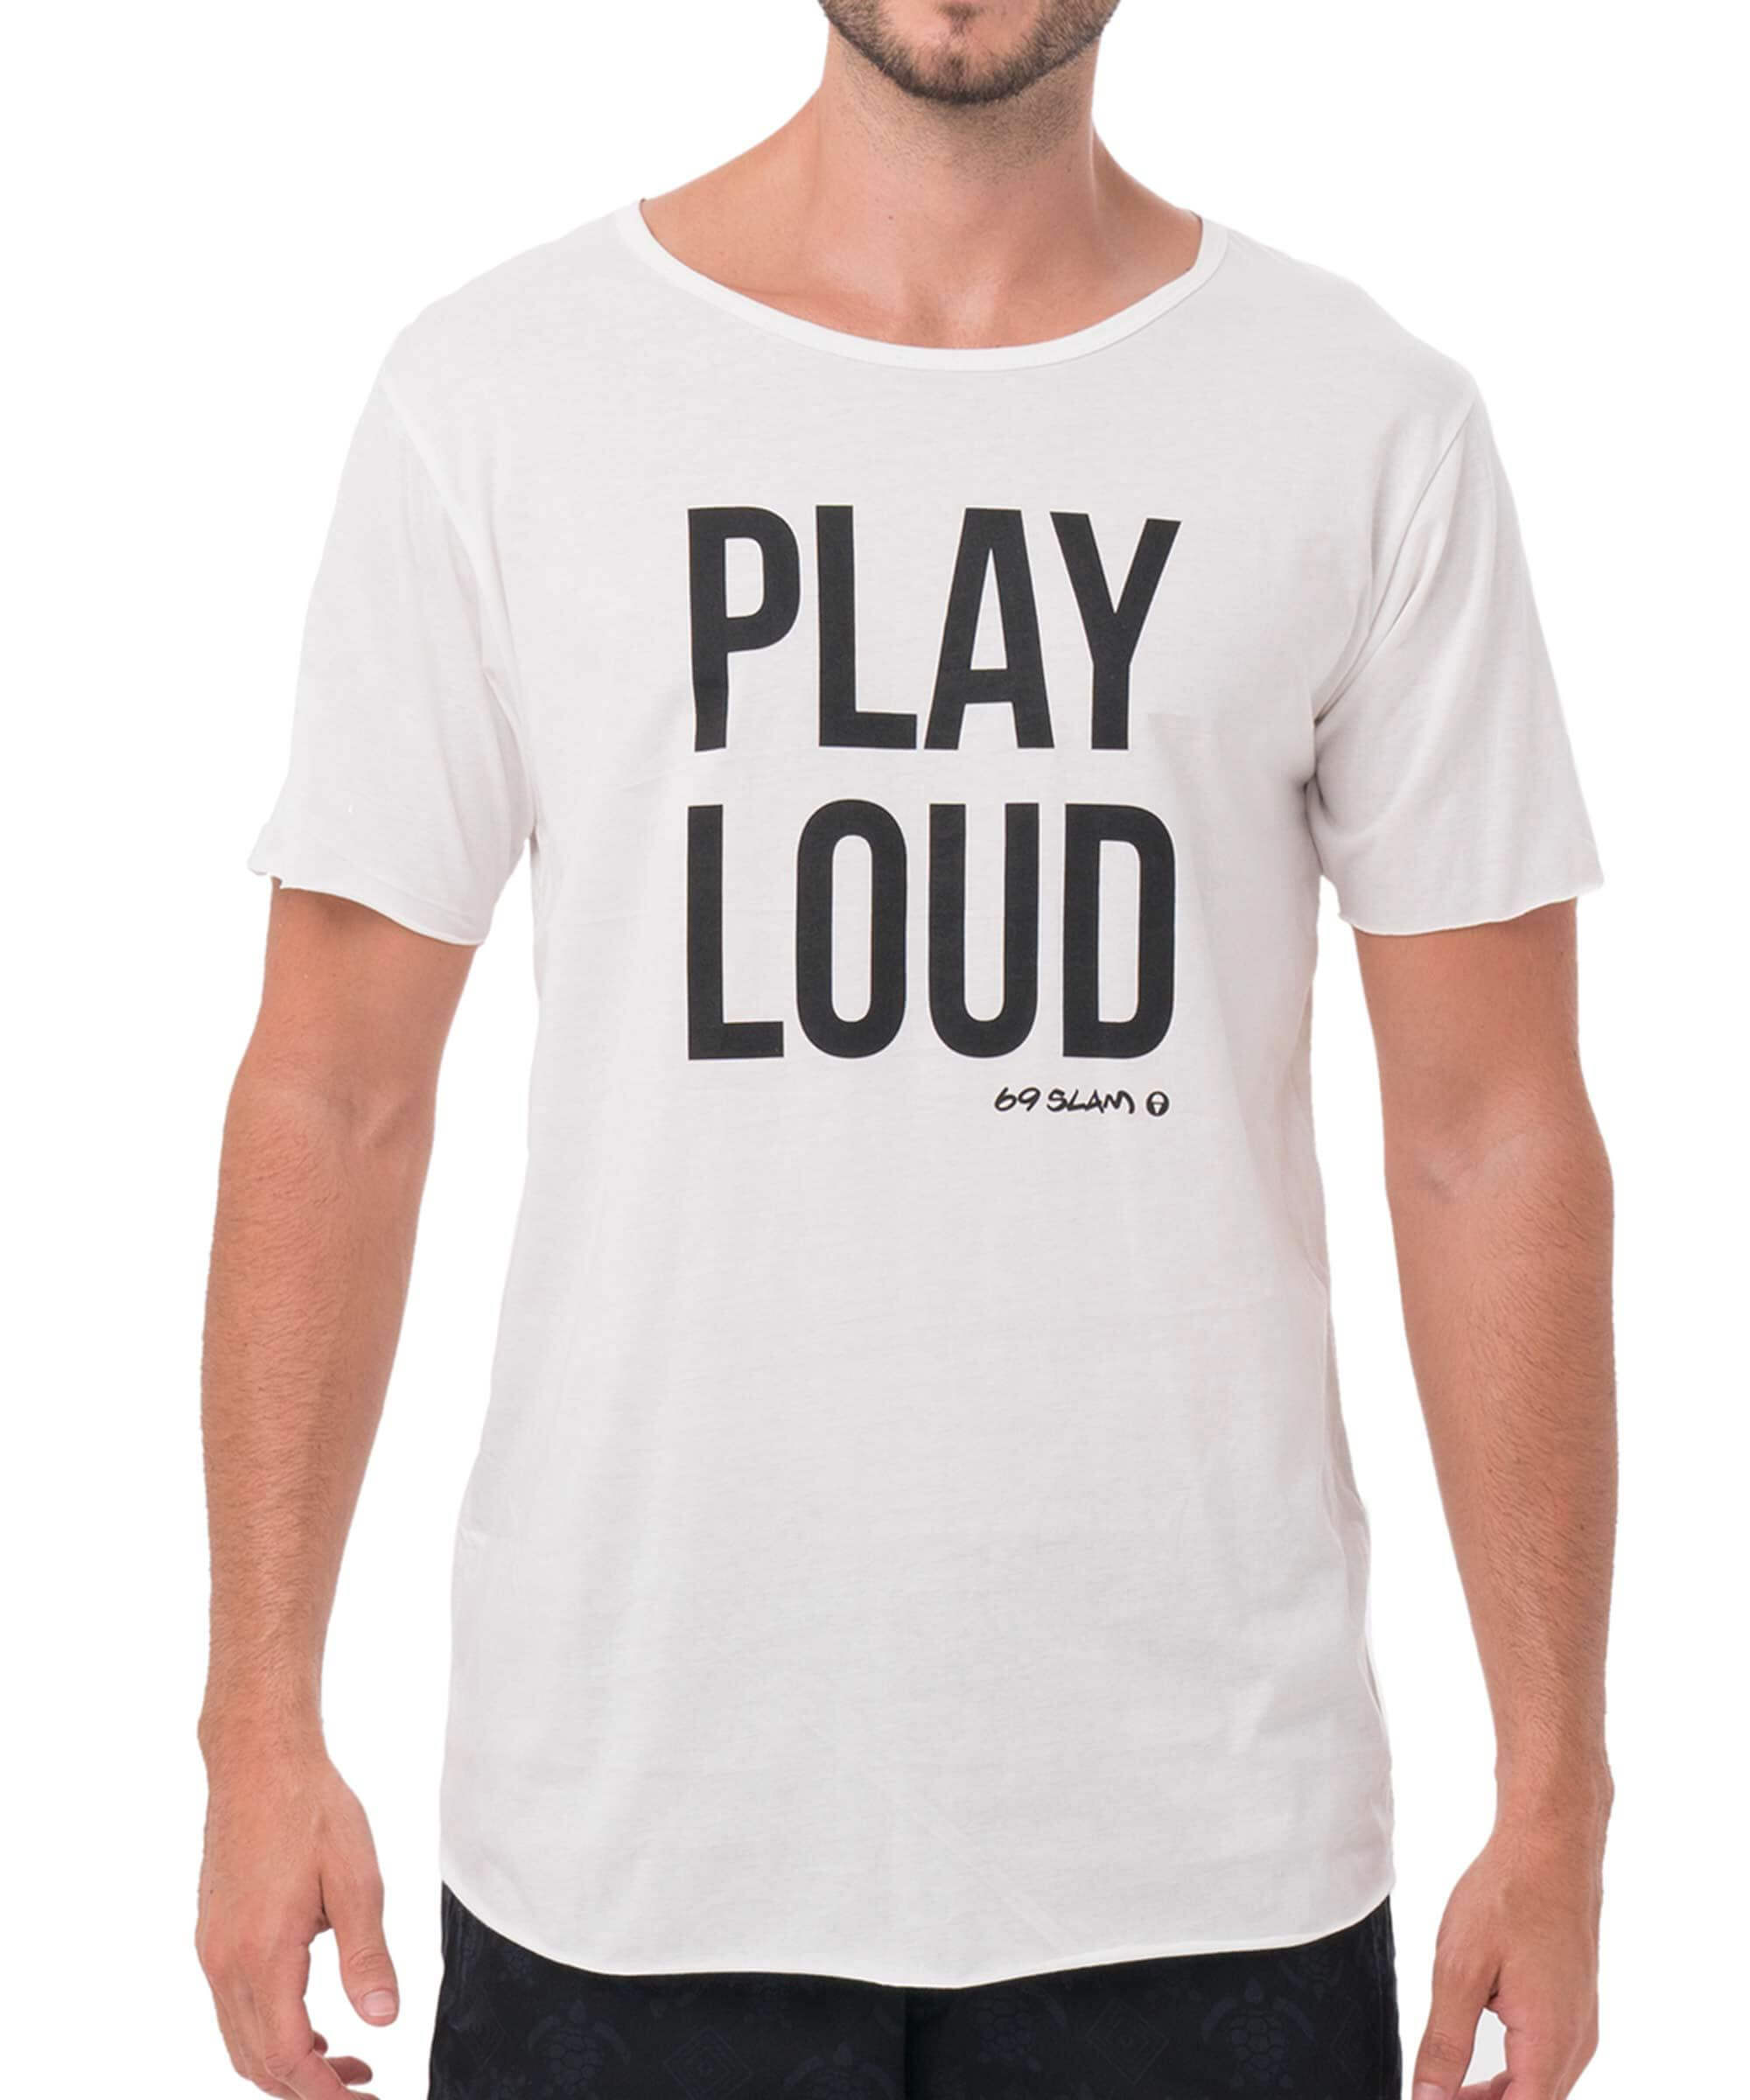 PLAYLOUD WHITE